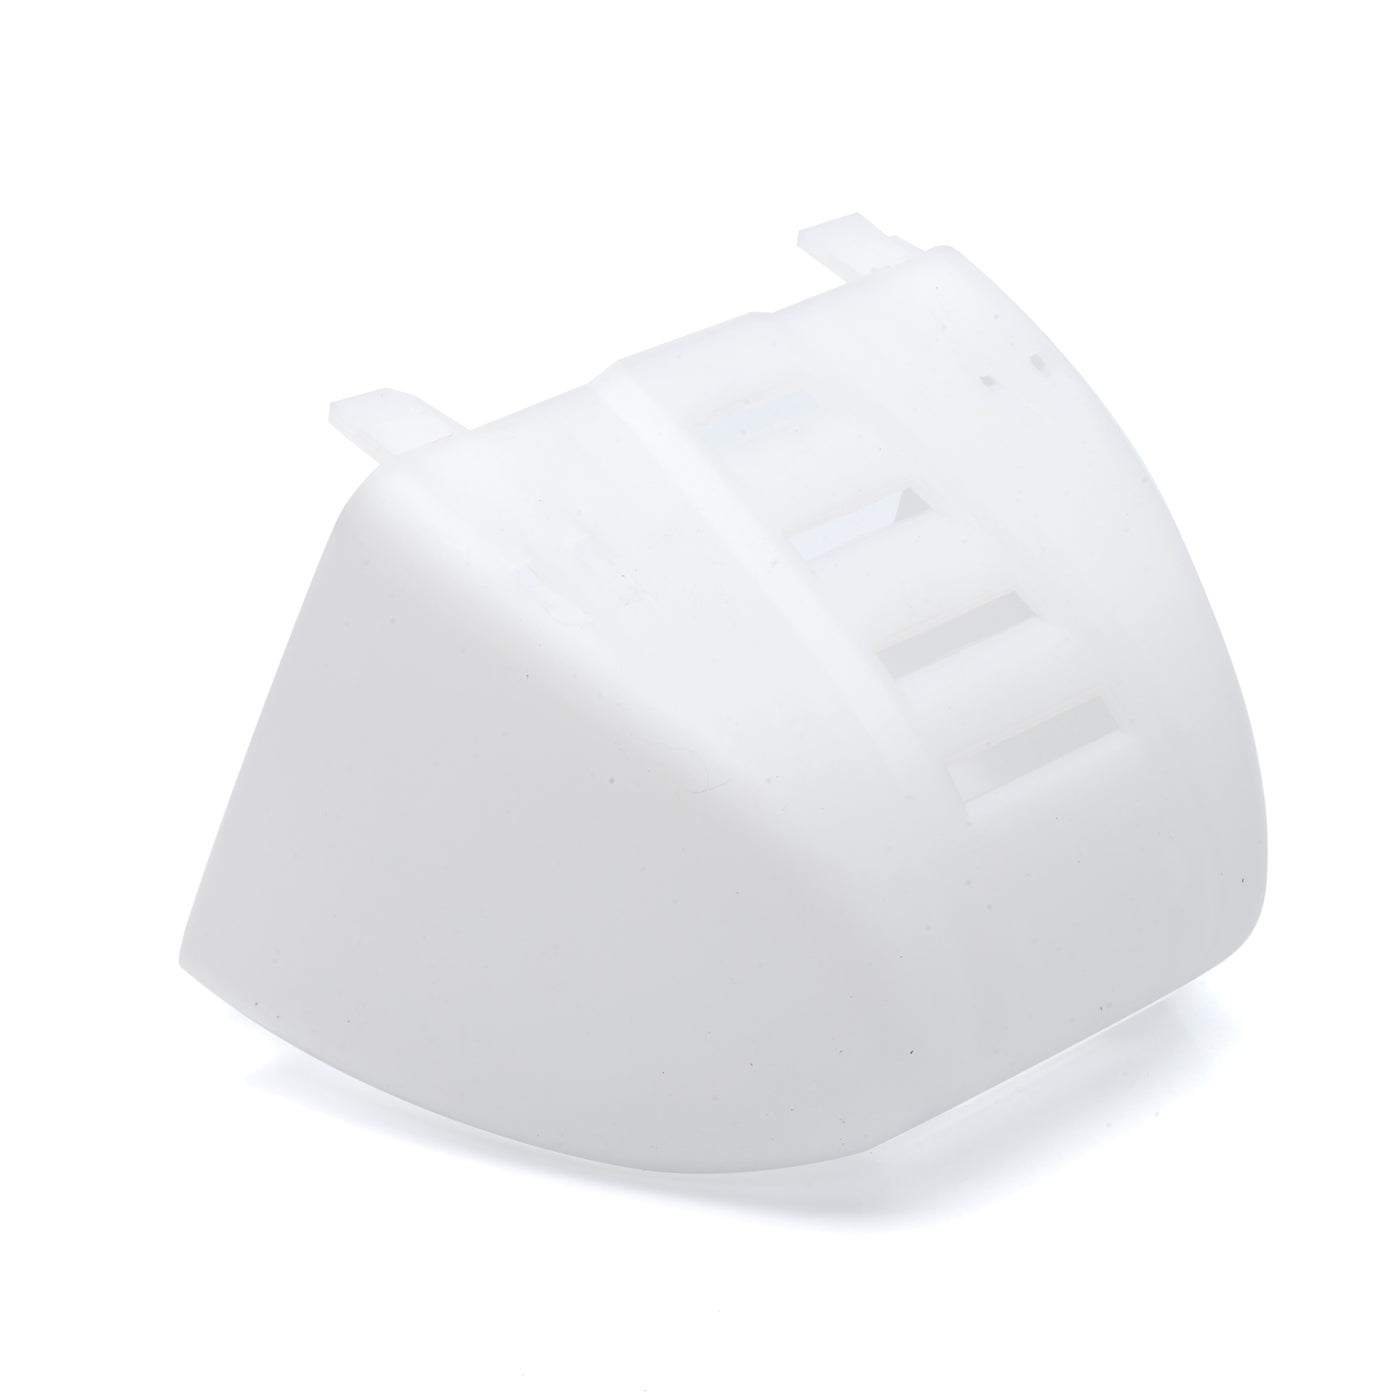 Light Lens Cover 39368a S Replacement For Genie Garage